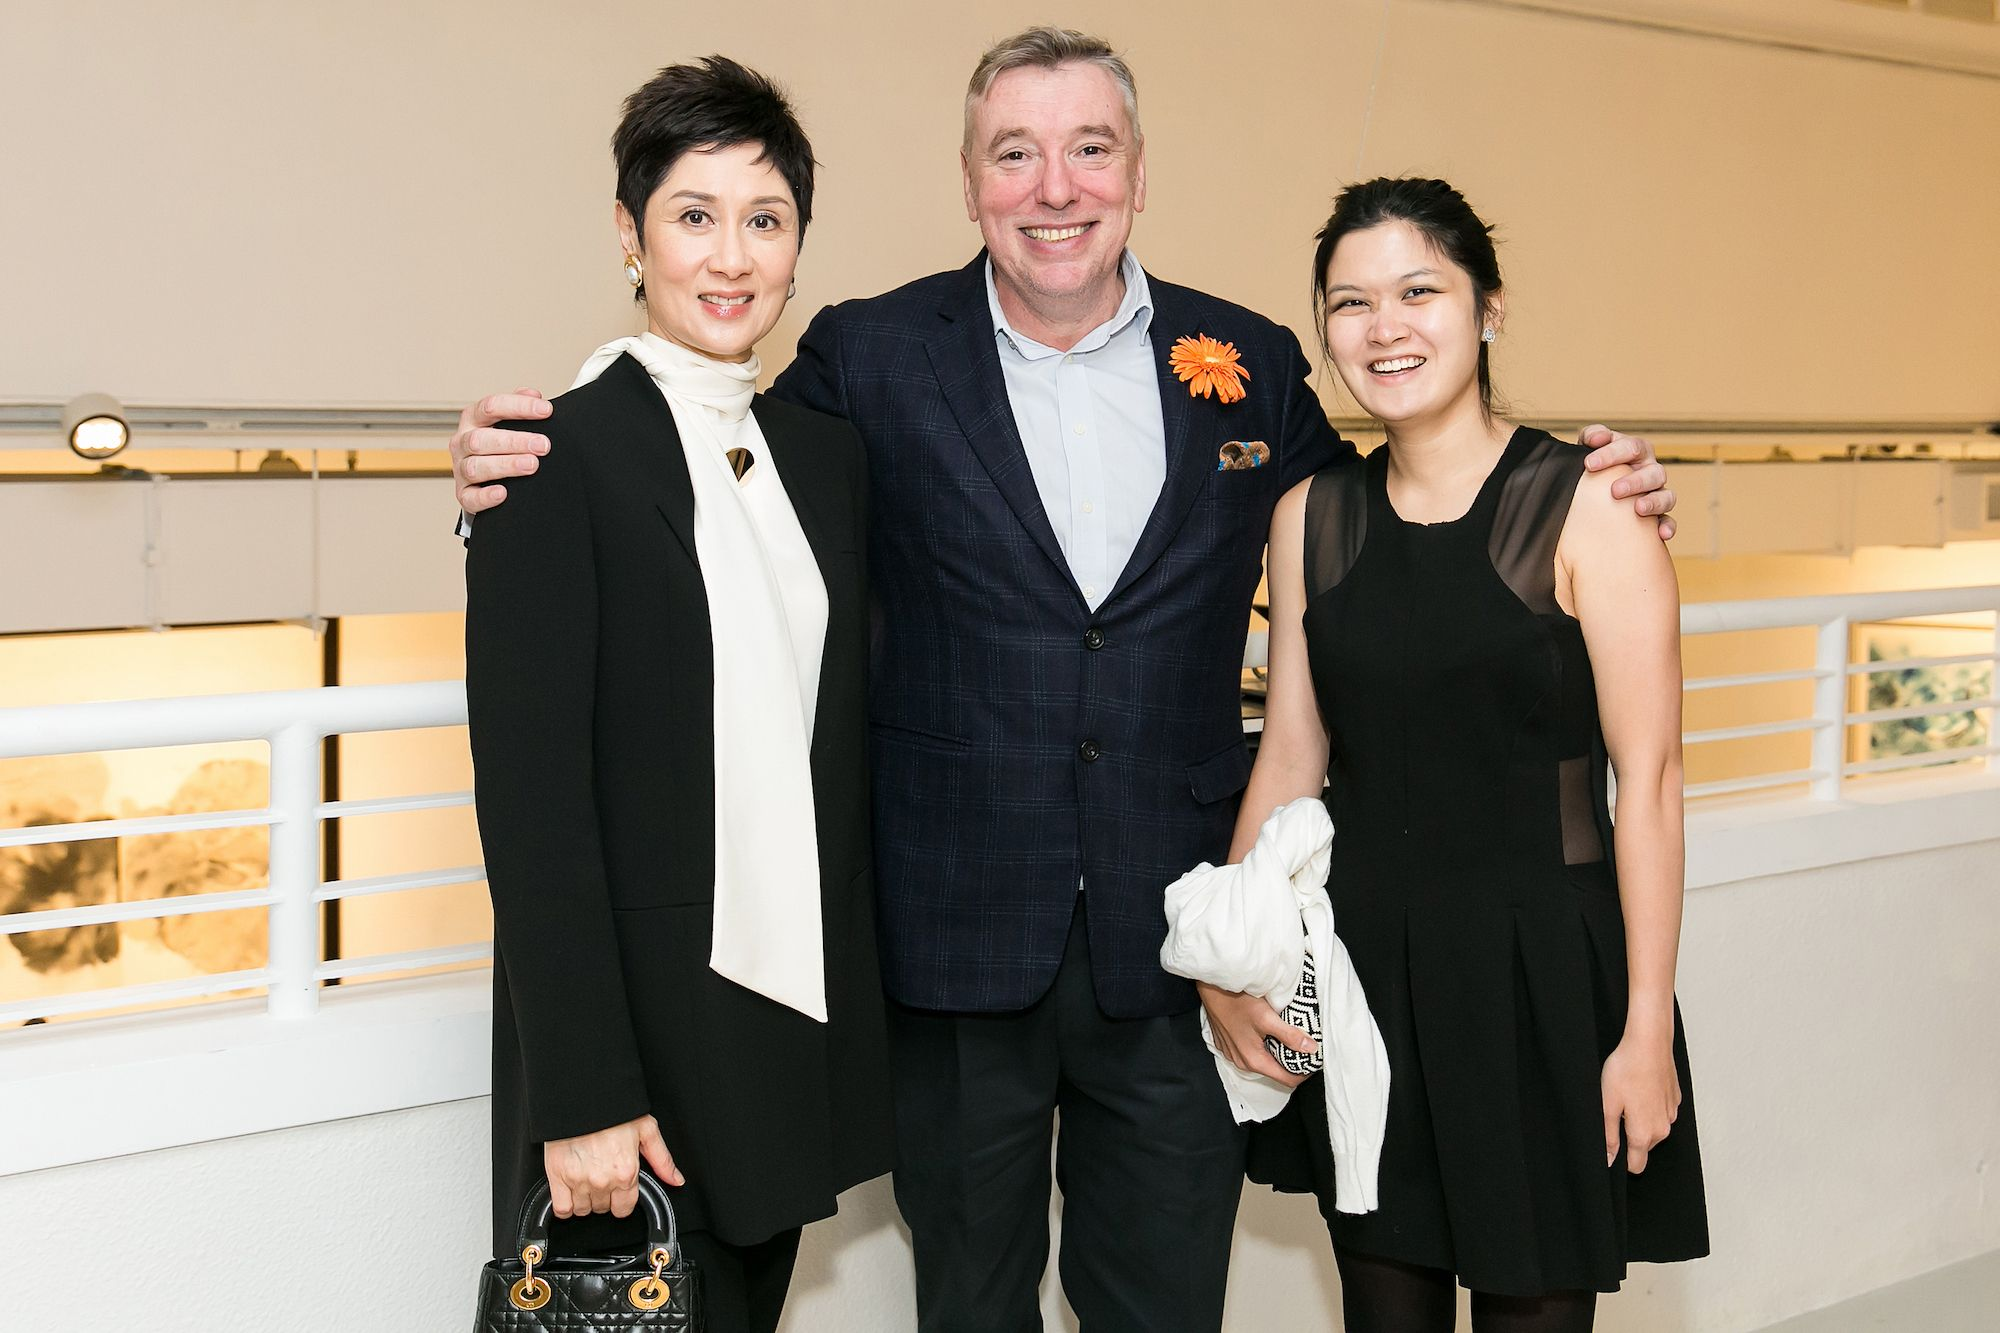 Michelle Ong, Mark Peaker, Jennifer Cheung